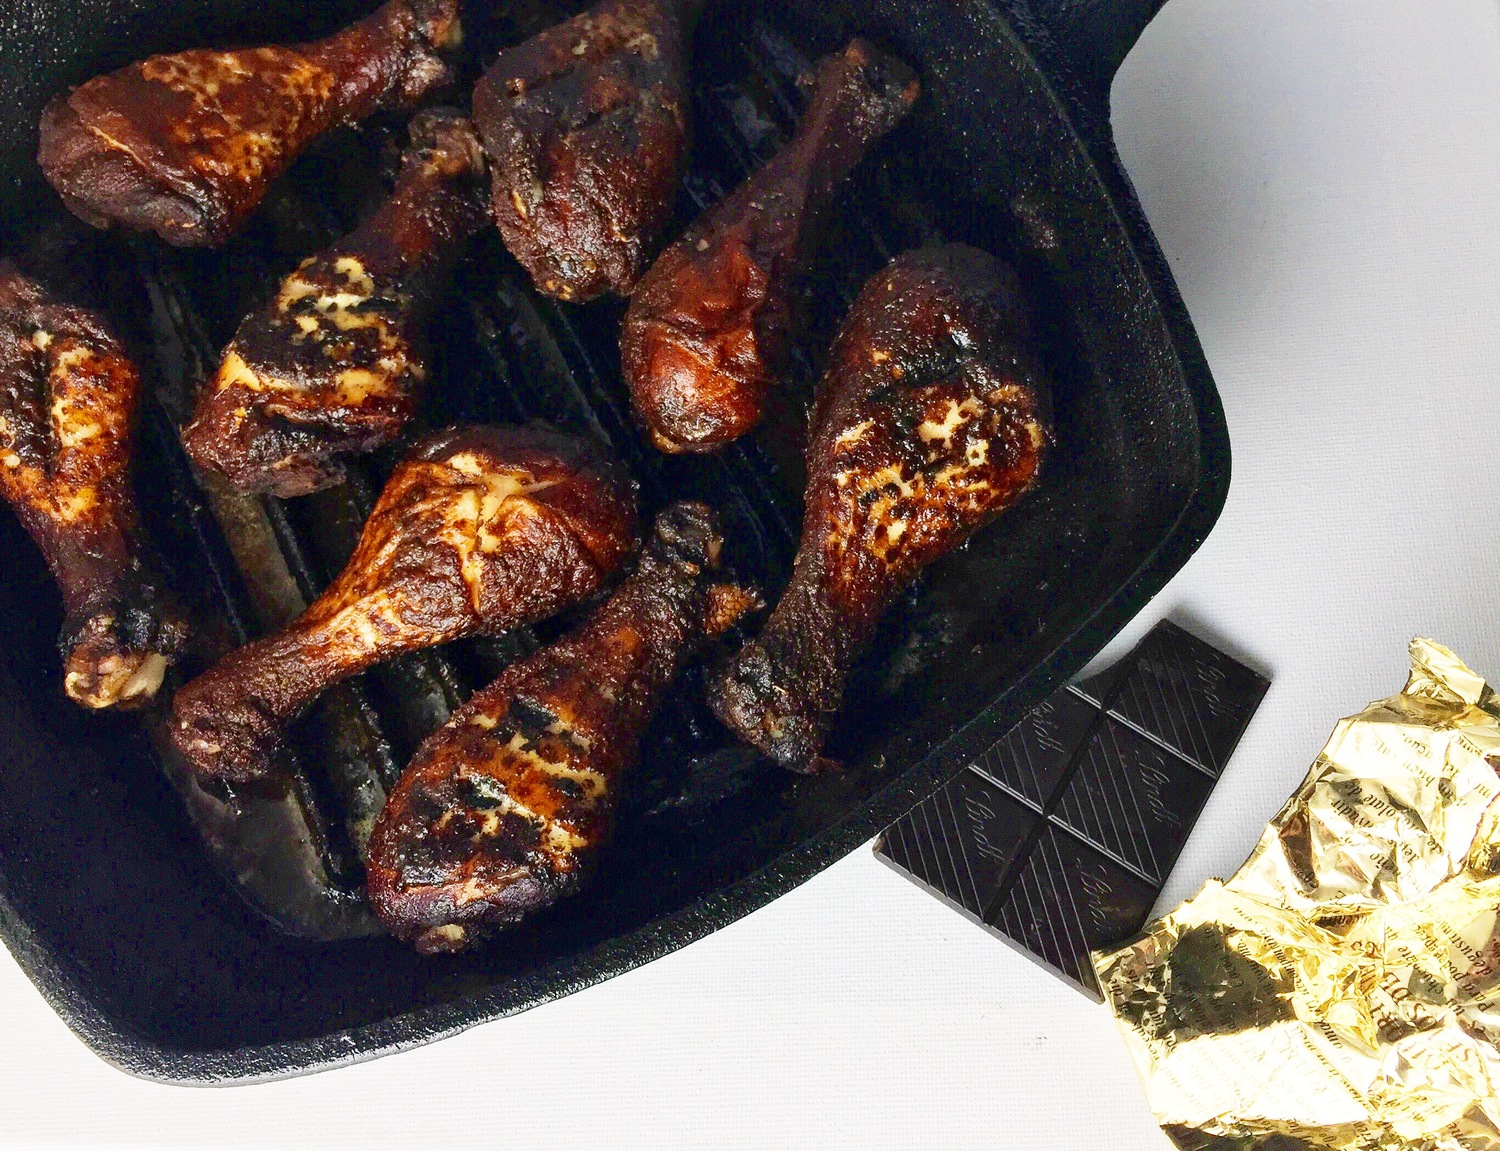 Savoury Cocoa Rubbed Chicken from Chew Street.